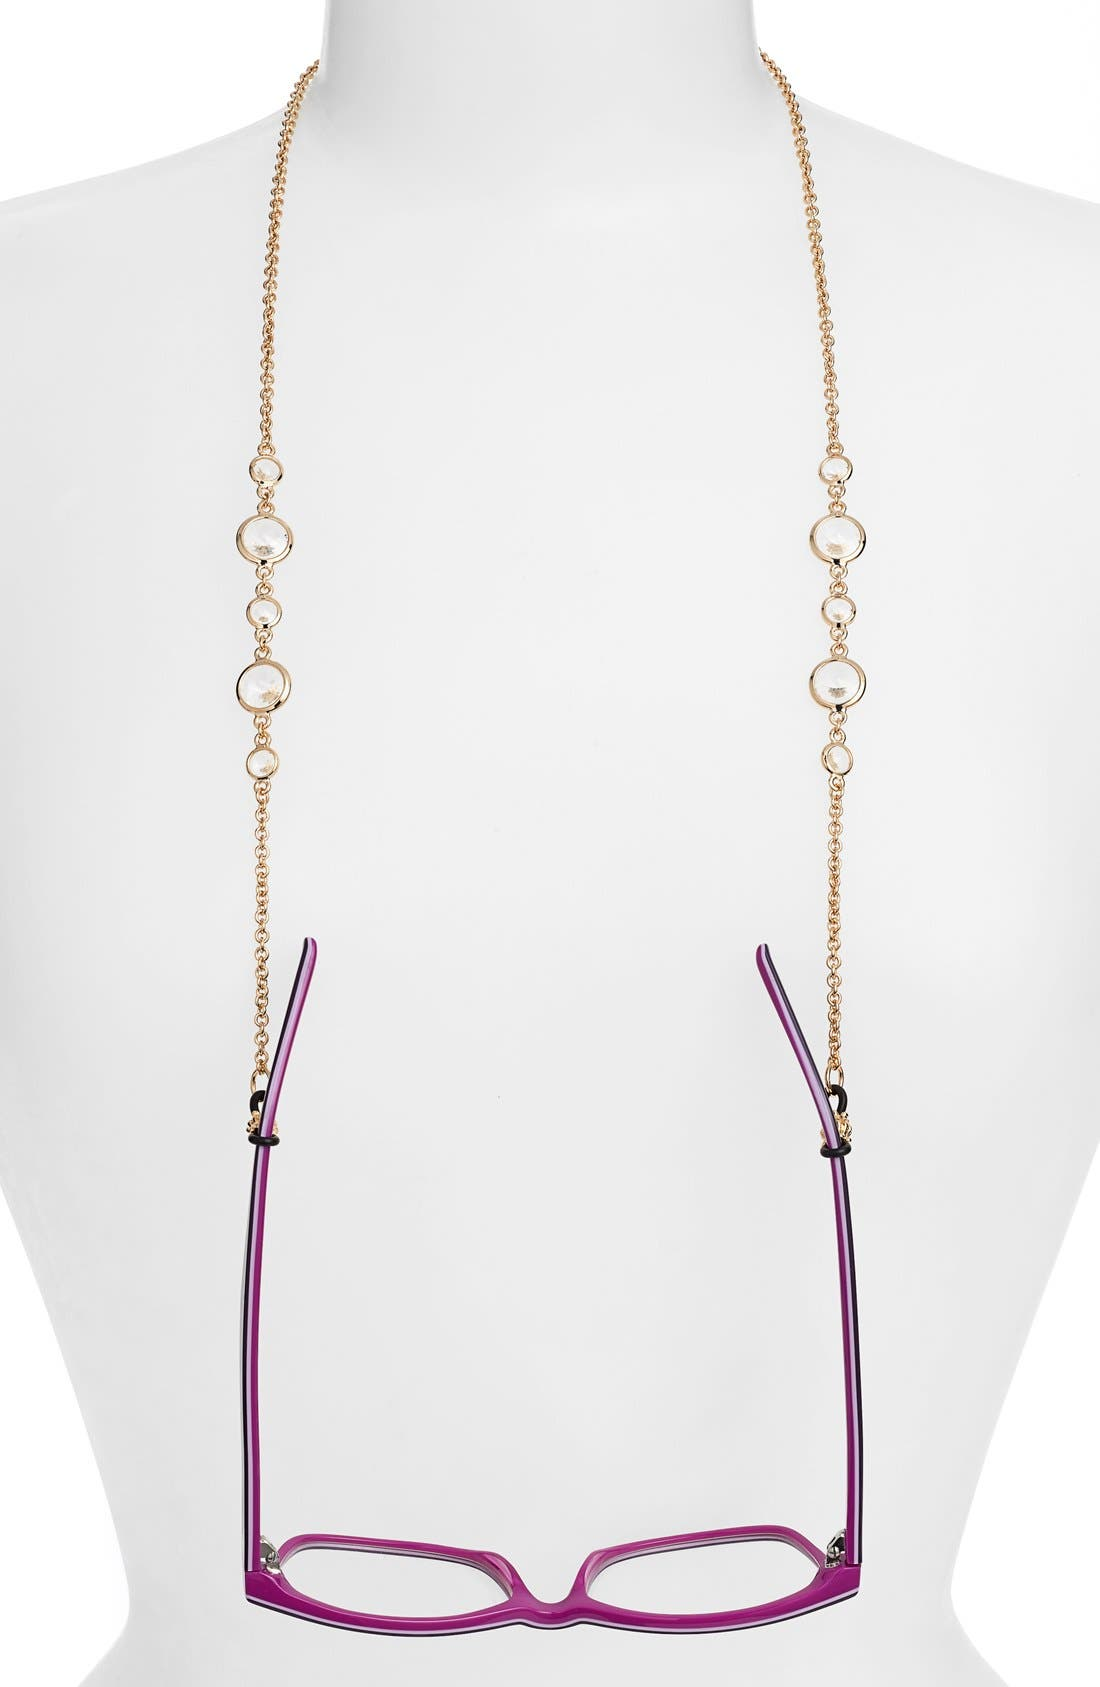 'Daphanie' Eyeglass Chain,                             Main thumbnail 1, color,                             Crystal/ Gold